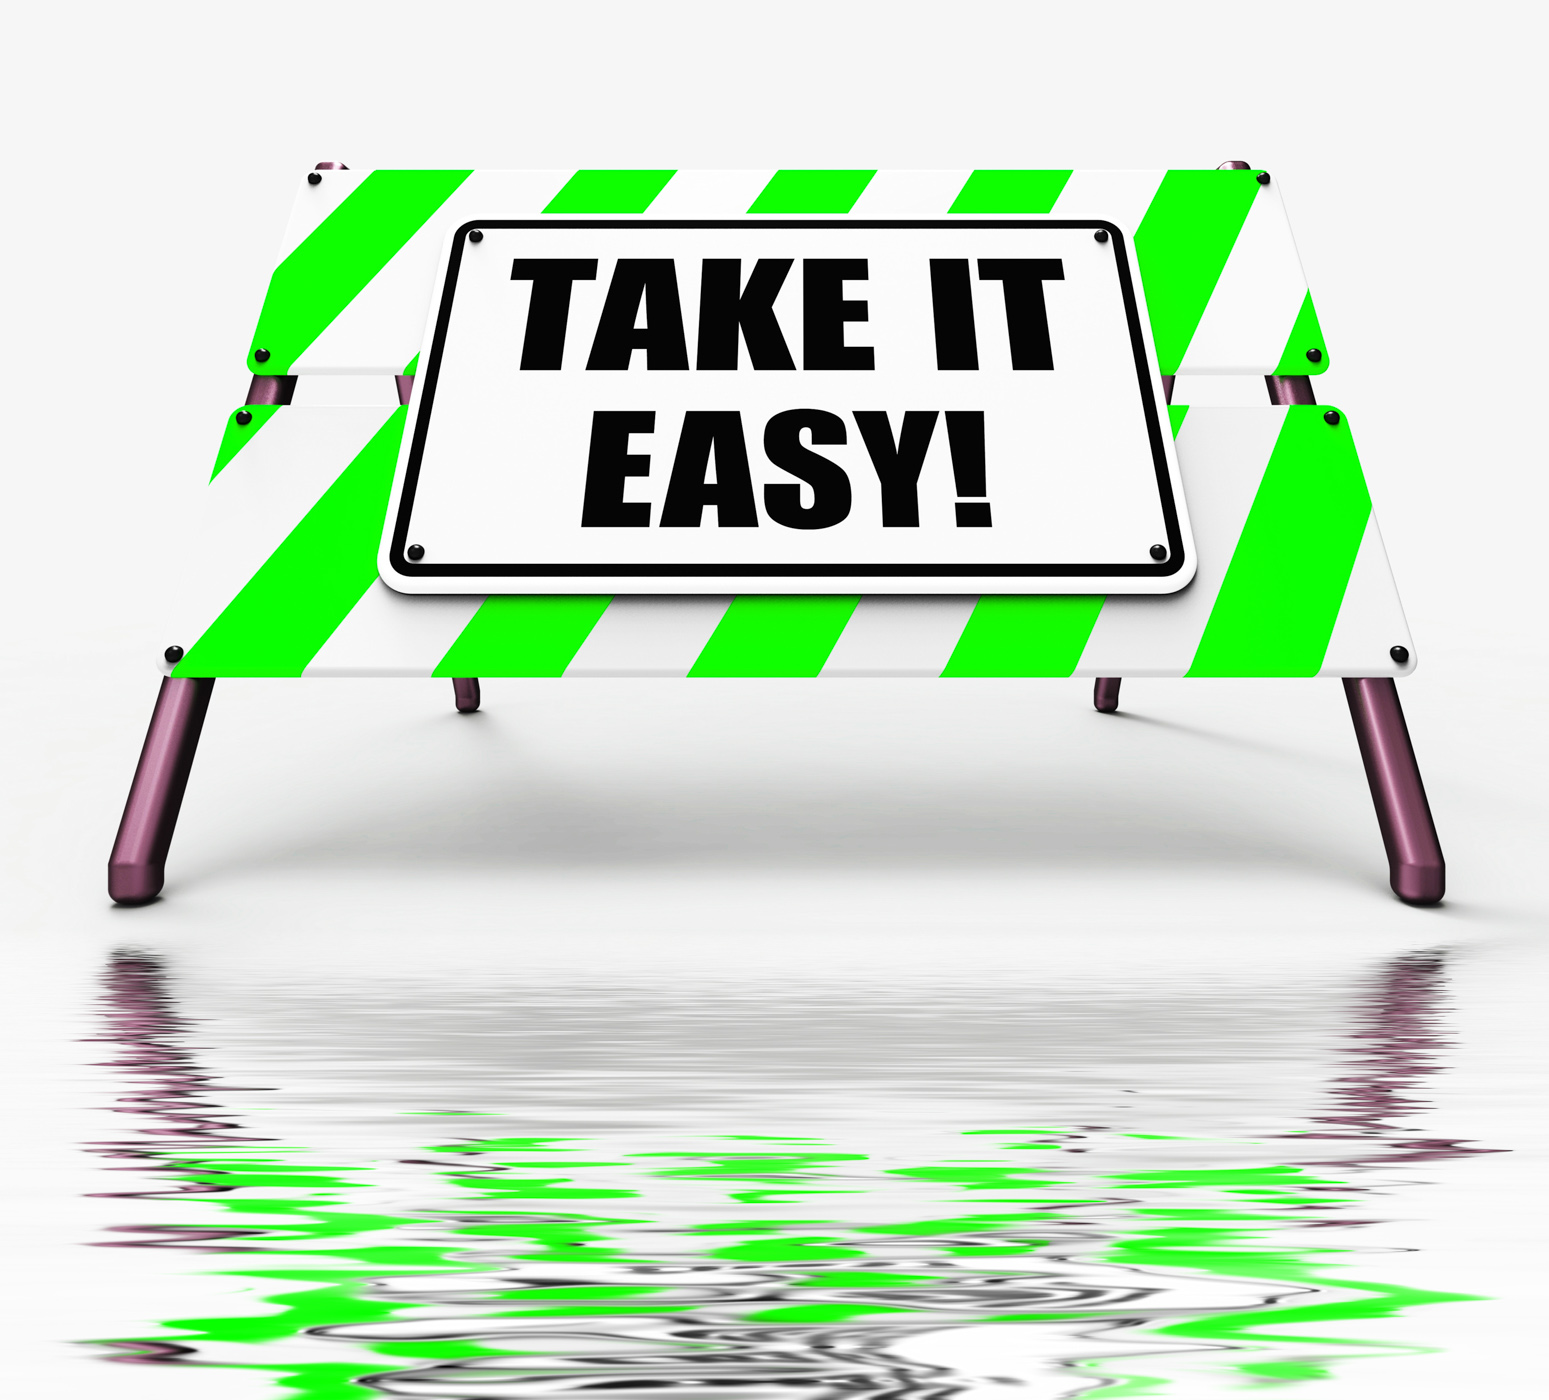 Take it easy sign displays to relax rest unwind and loosen up photo